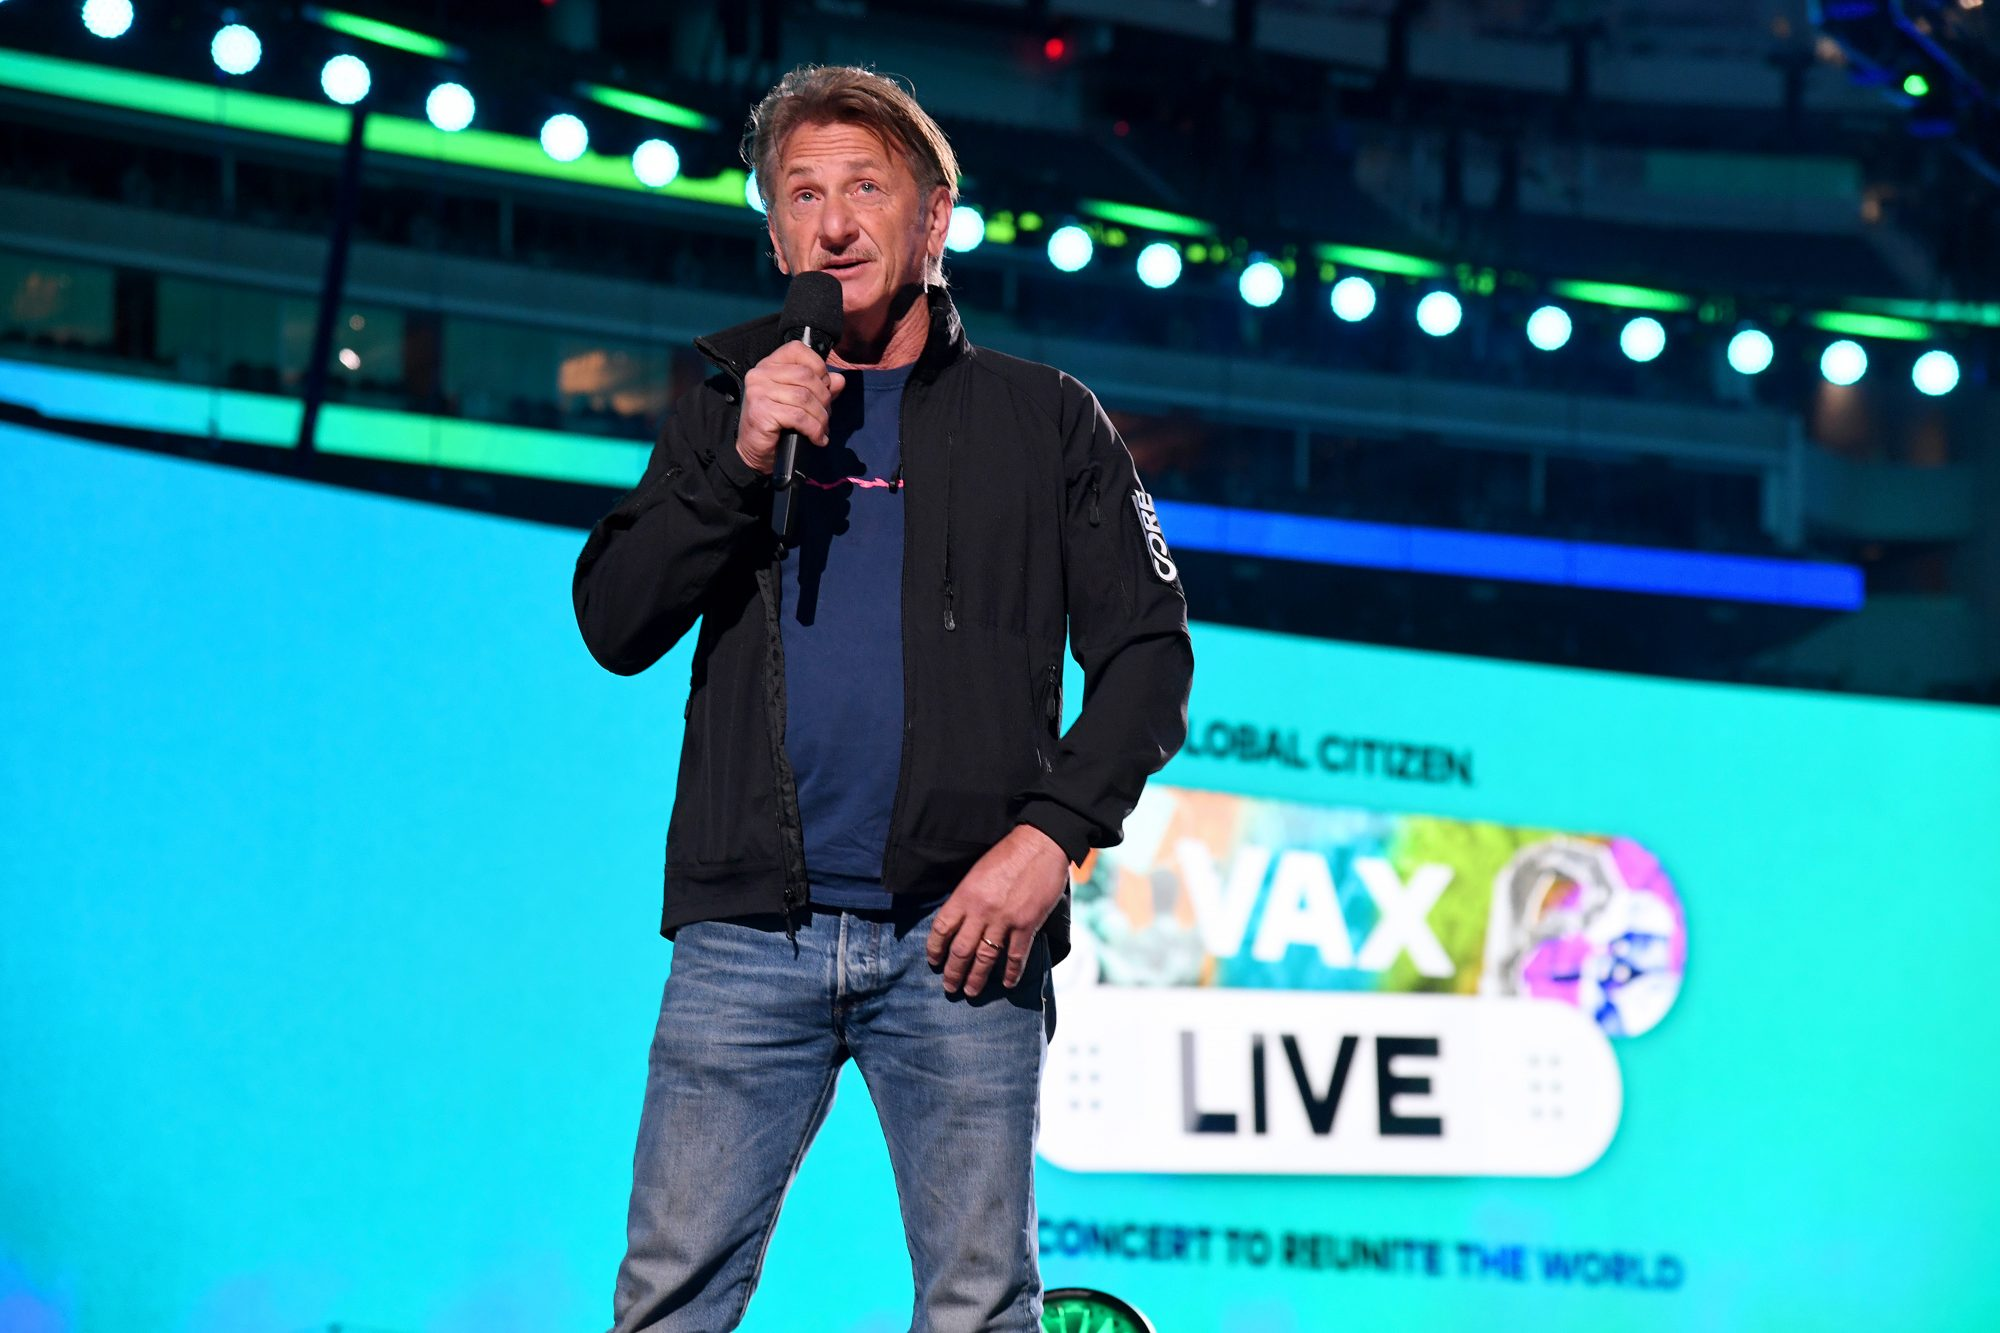 Sean Penn and Wife Leila George Have a Date Night at VAX Live Event Taping